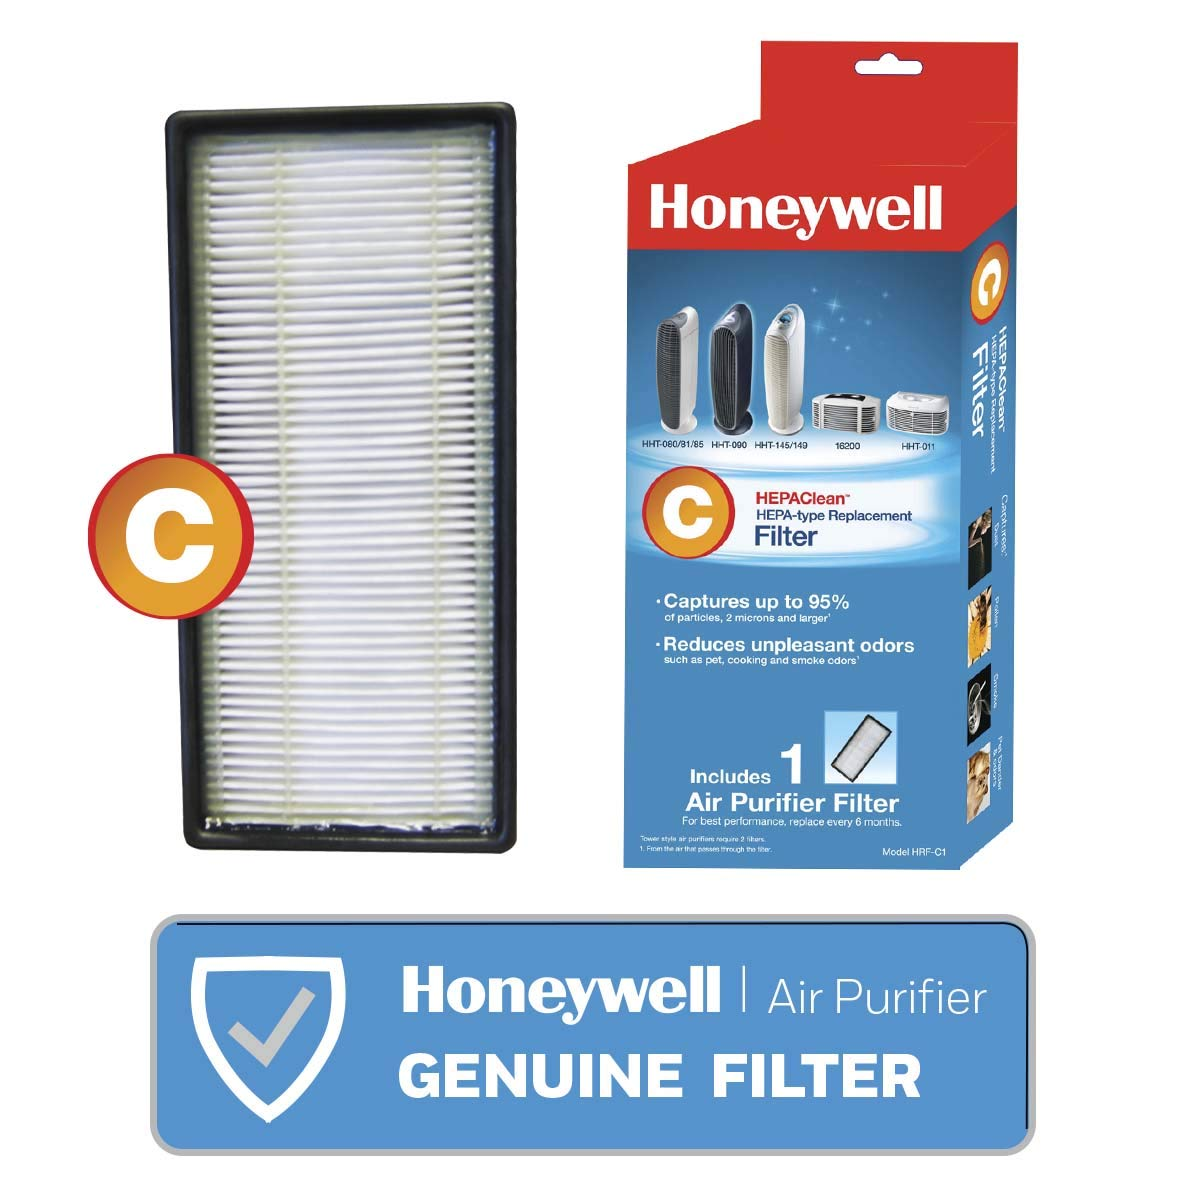 Honeywell HEPAClean Air Purifier Replacement Filter HRF-C1/Filter (C)